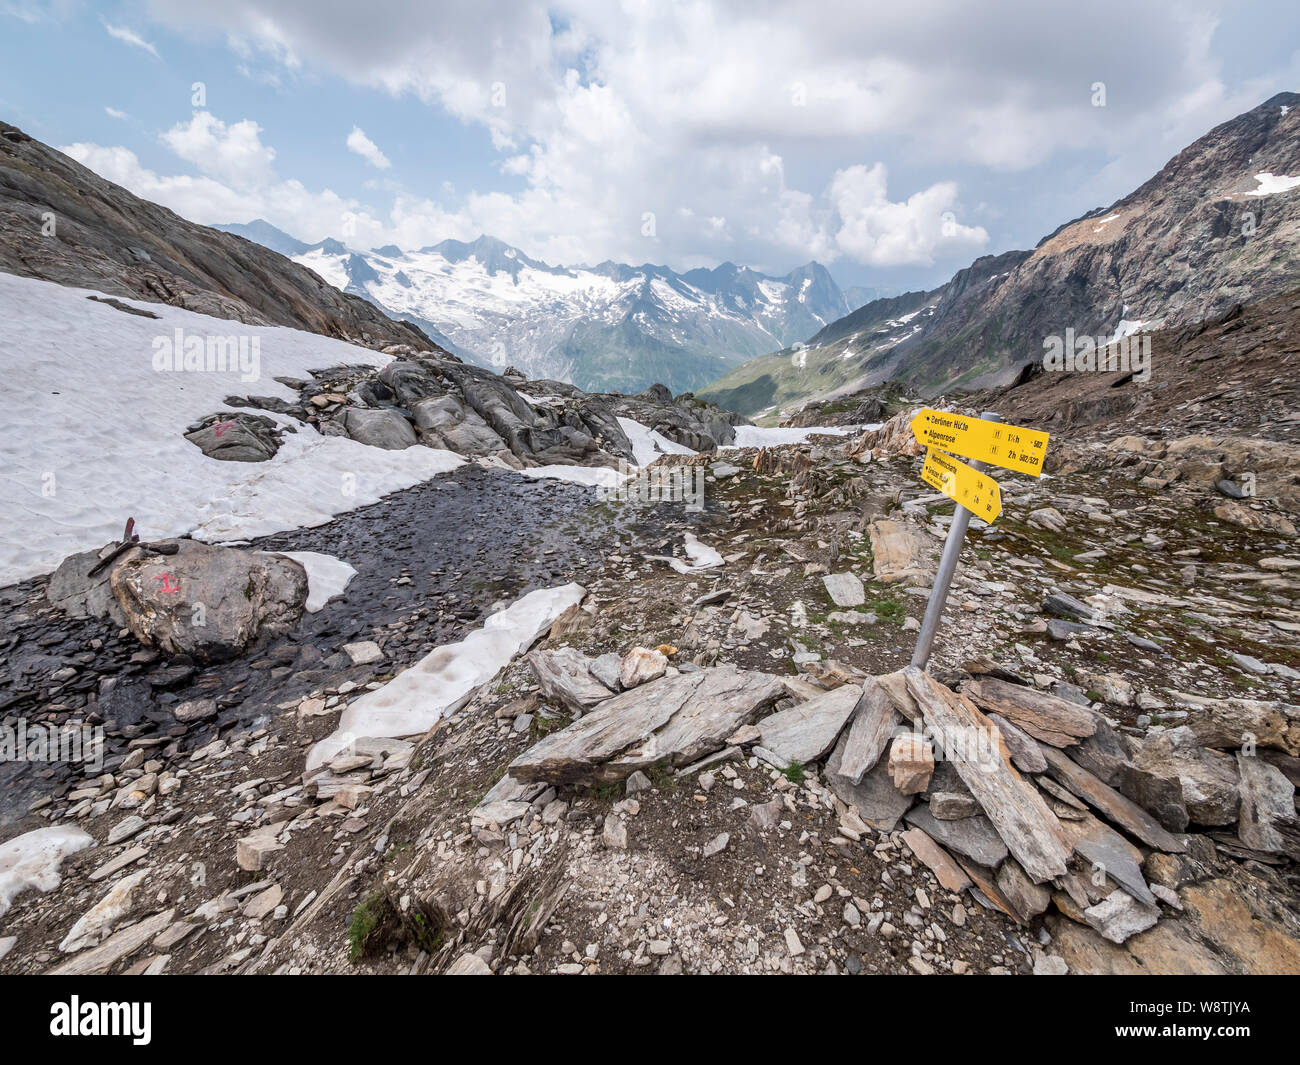 Rugged mountain scenery of the Zillertal Alps near Schwartz See and the Berliner Hut mountain refuge in the Austrian Tirol Stock Photo